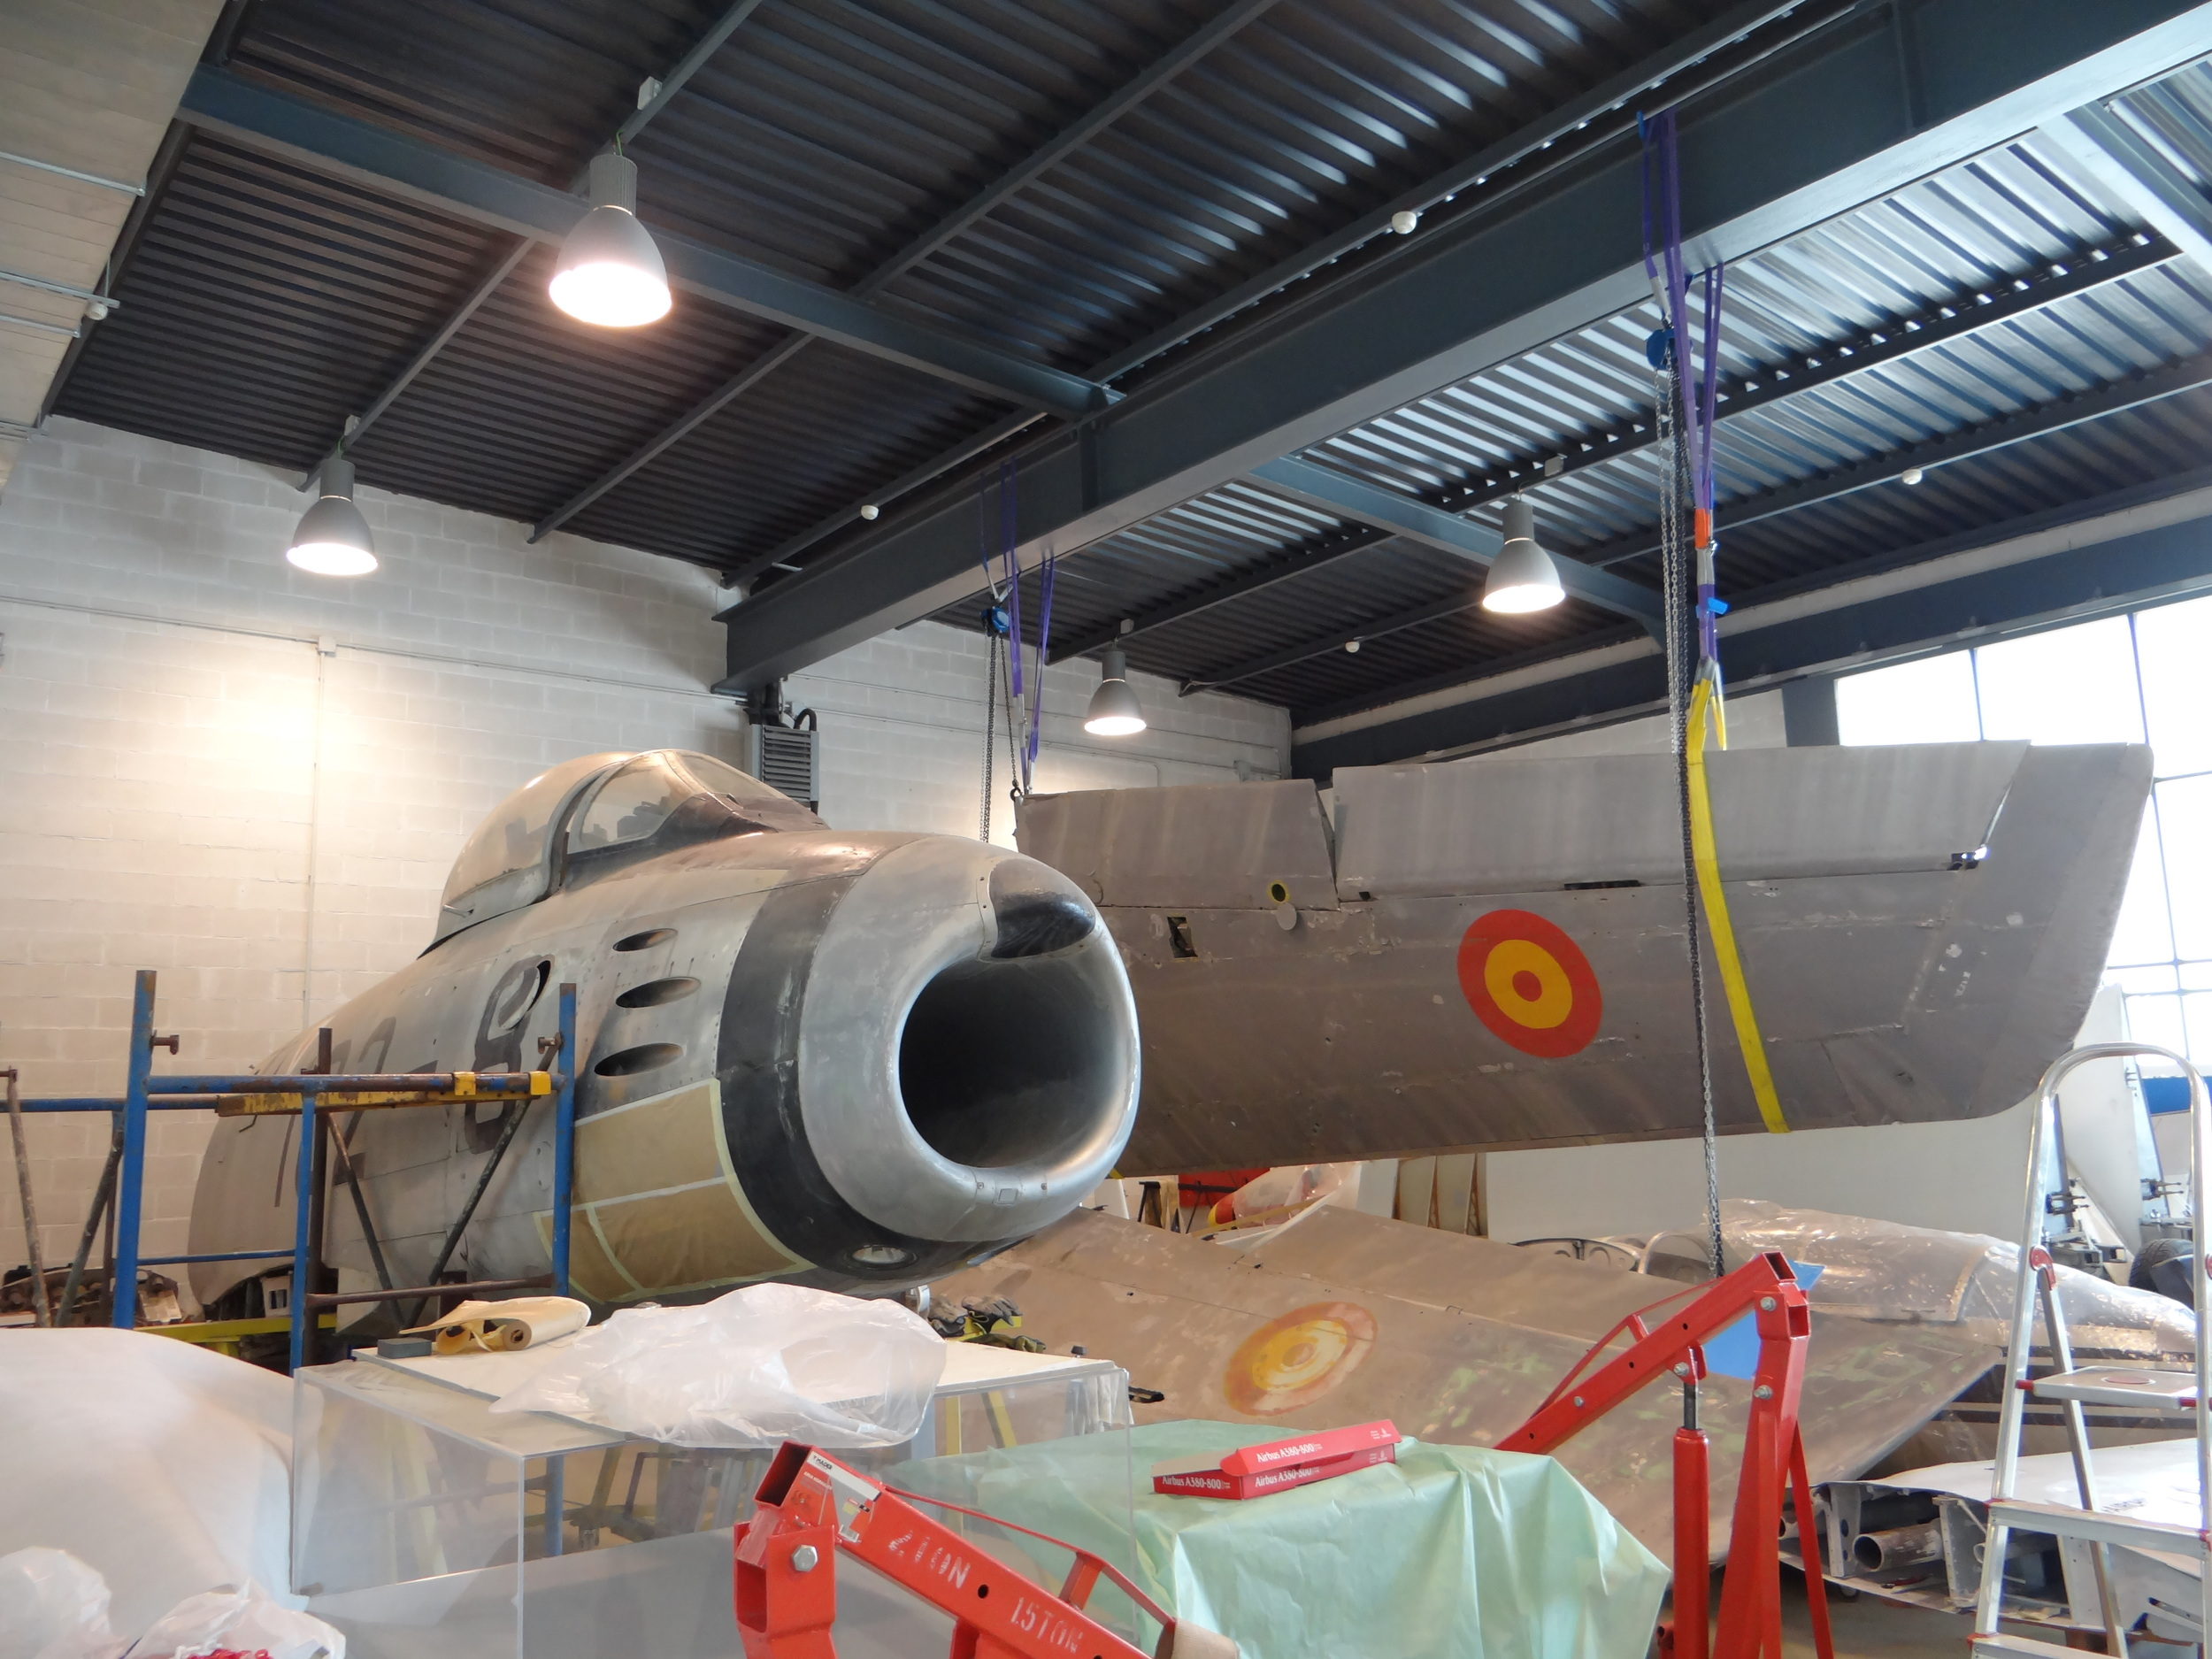 We could also see the workshop, where this ex-Spanish air force F-86 Sabre is undergoing restoration